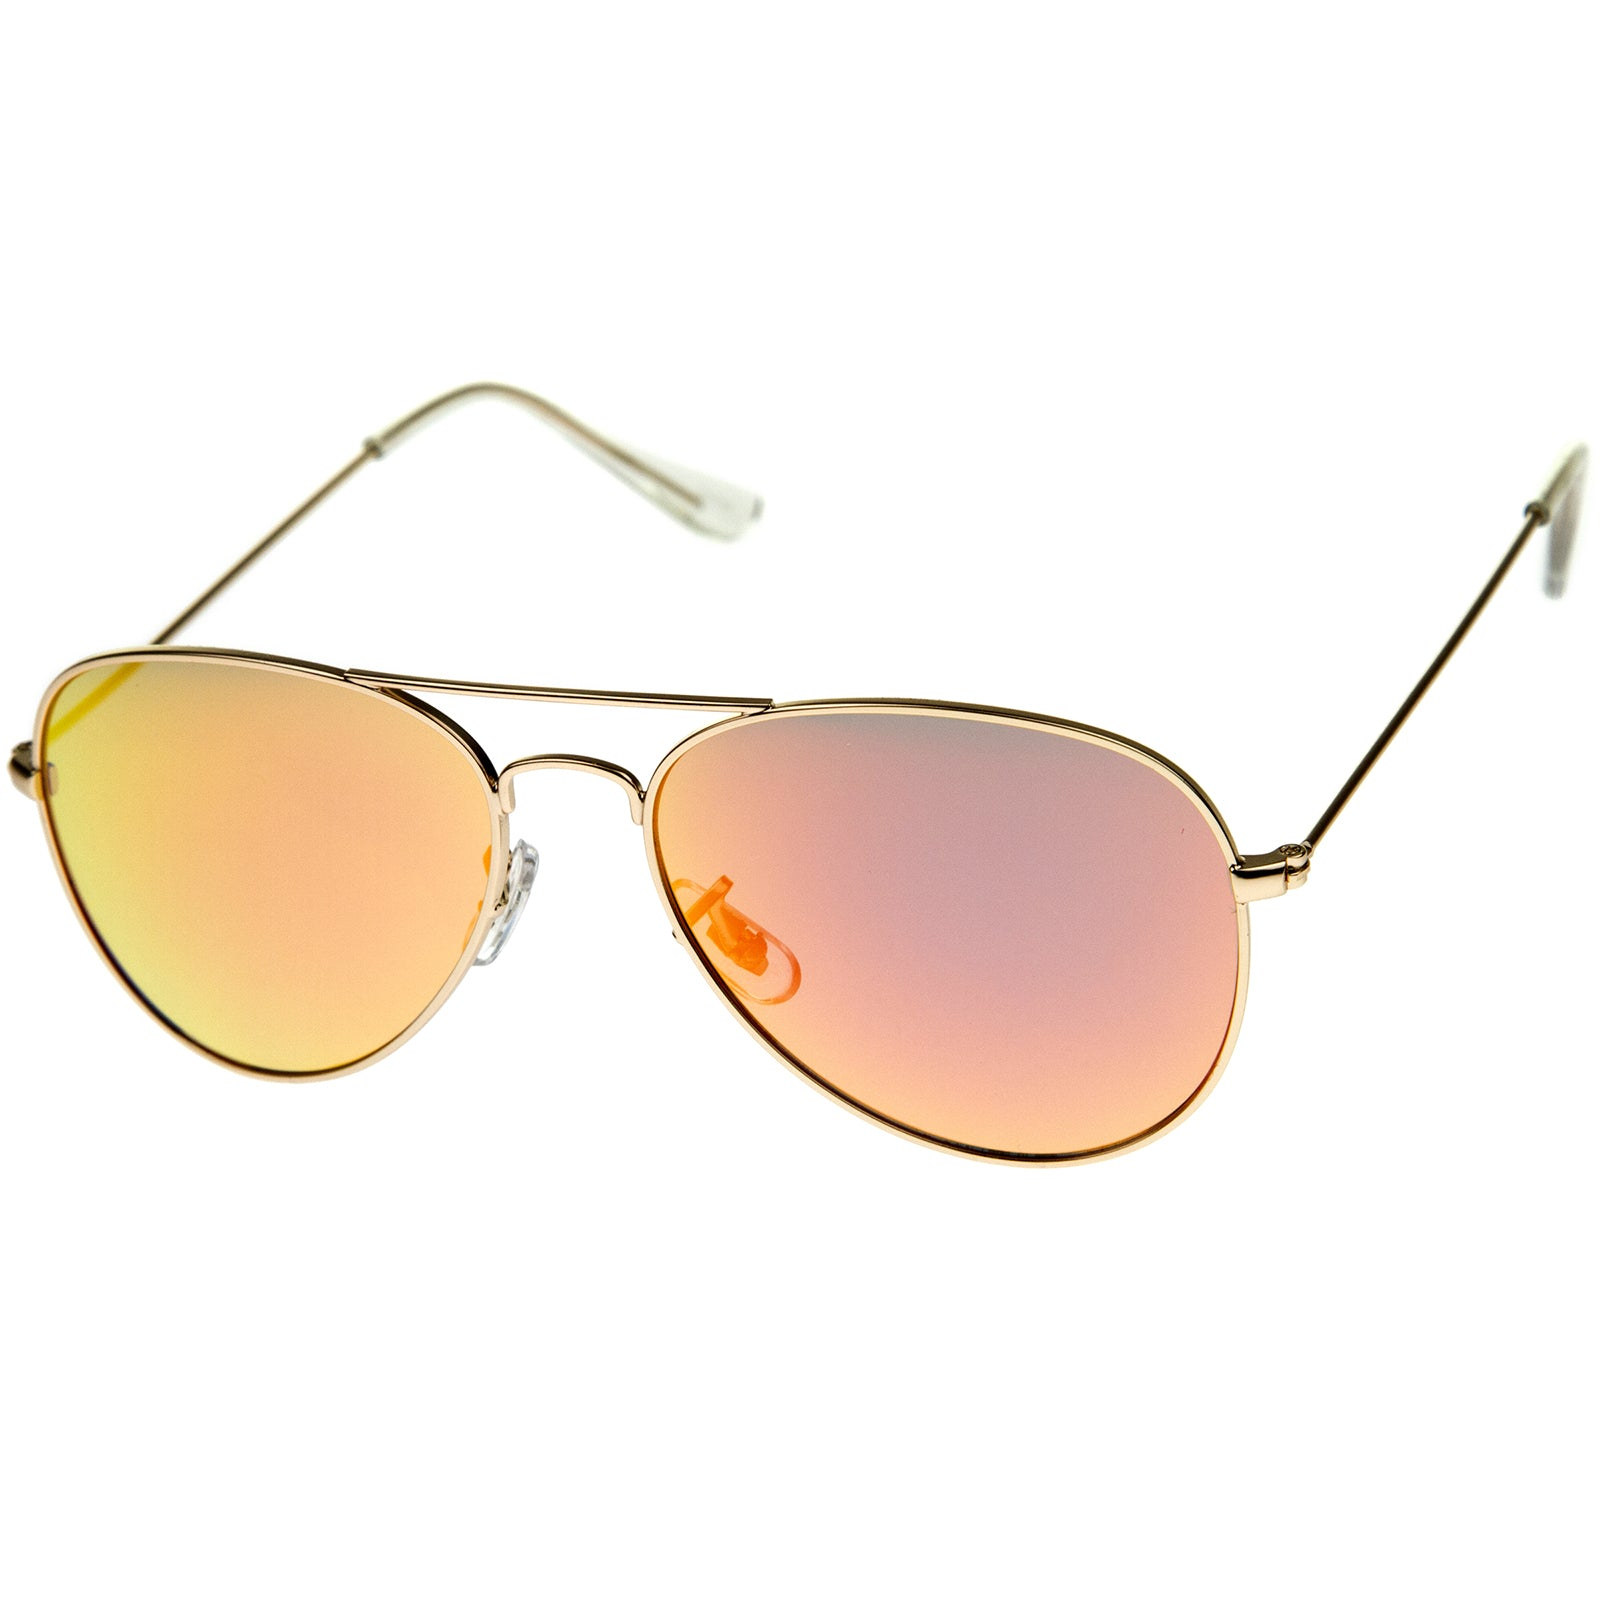 Premium Nickel Plated Frame Multi-Coated Mirror Lens Aviator Sunglasses 59mm - sunglass.la - 6